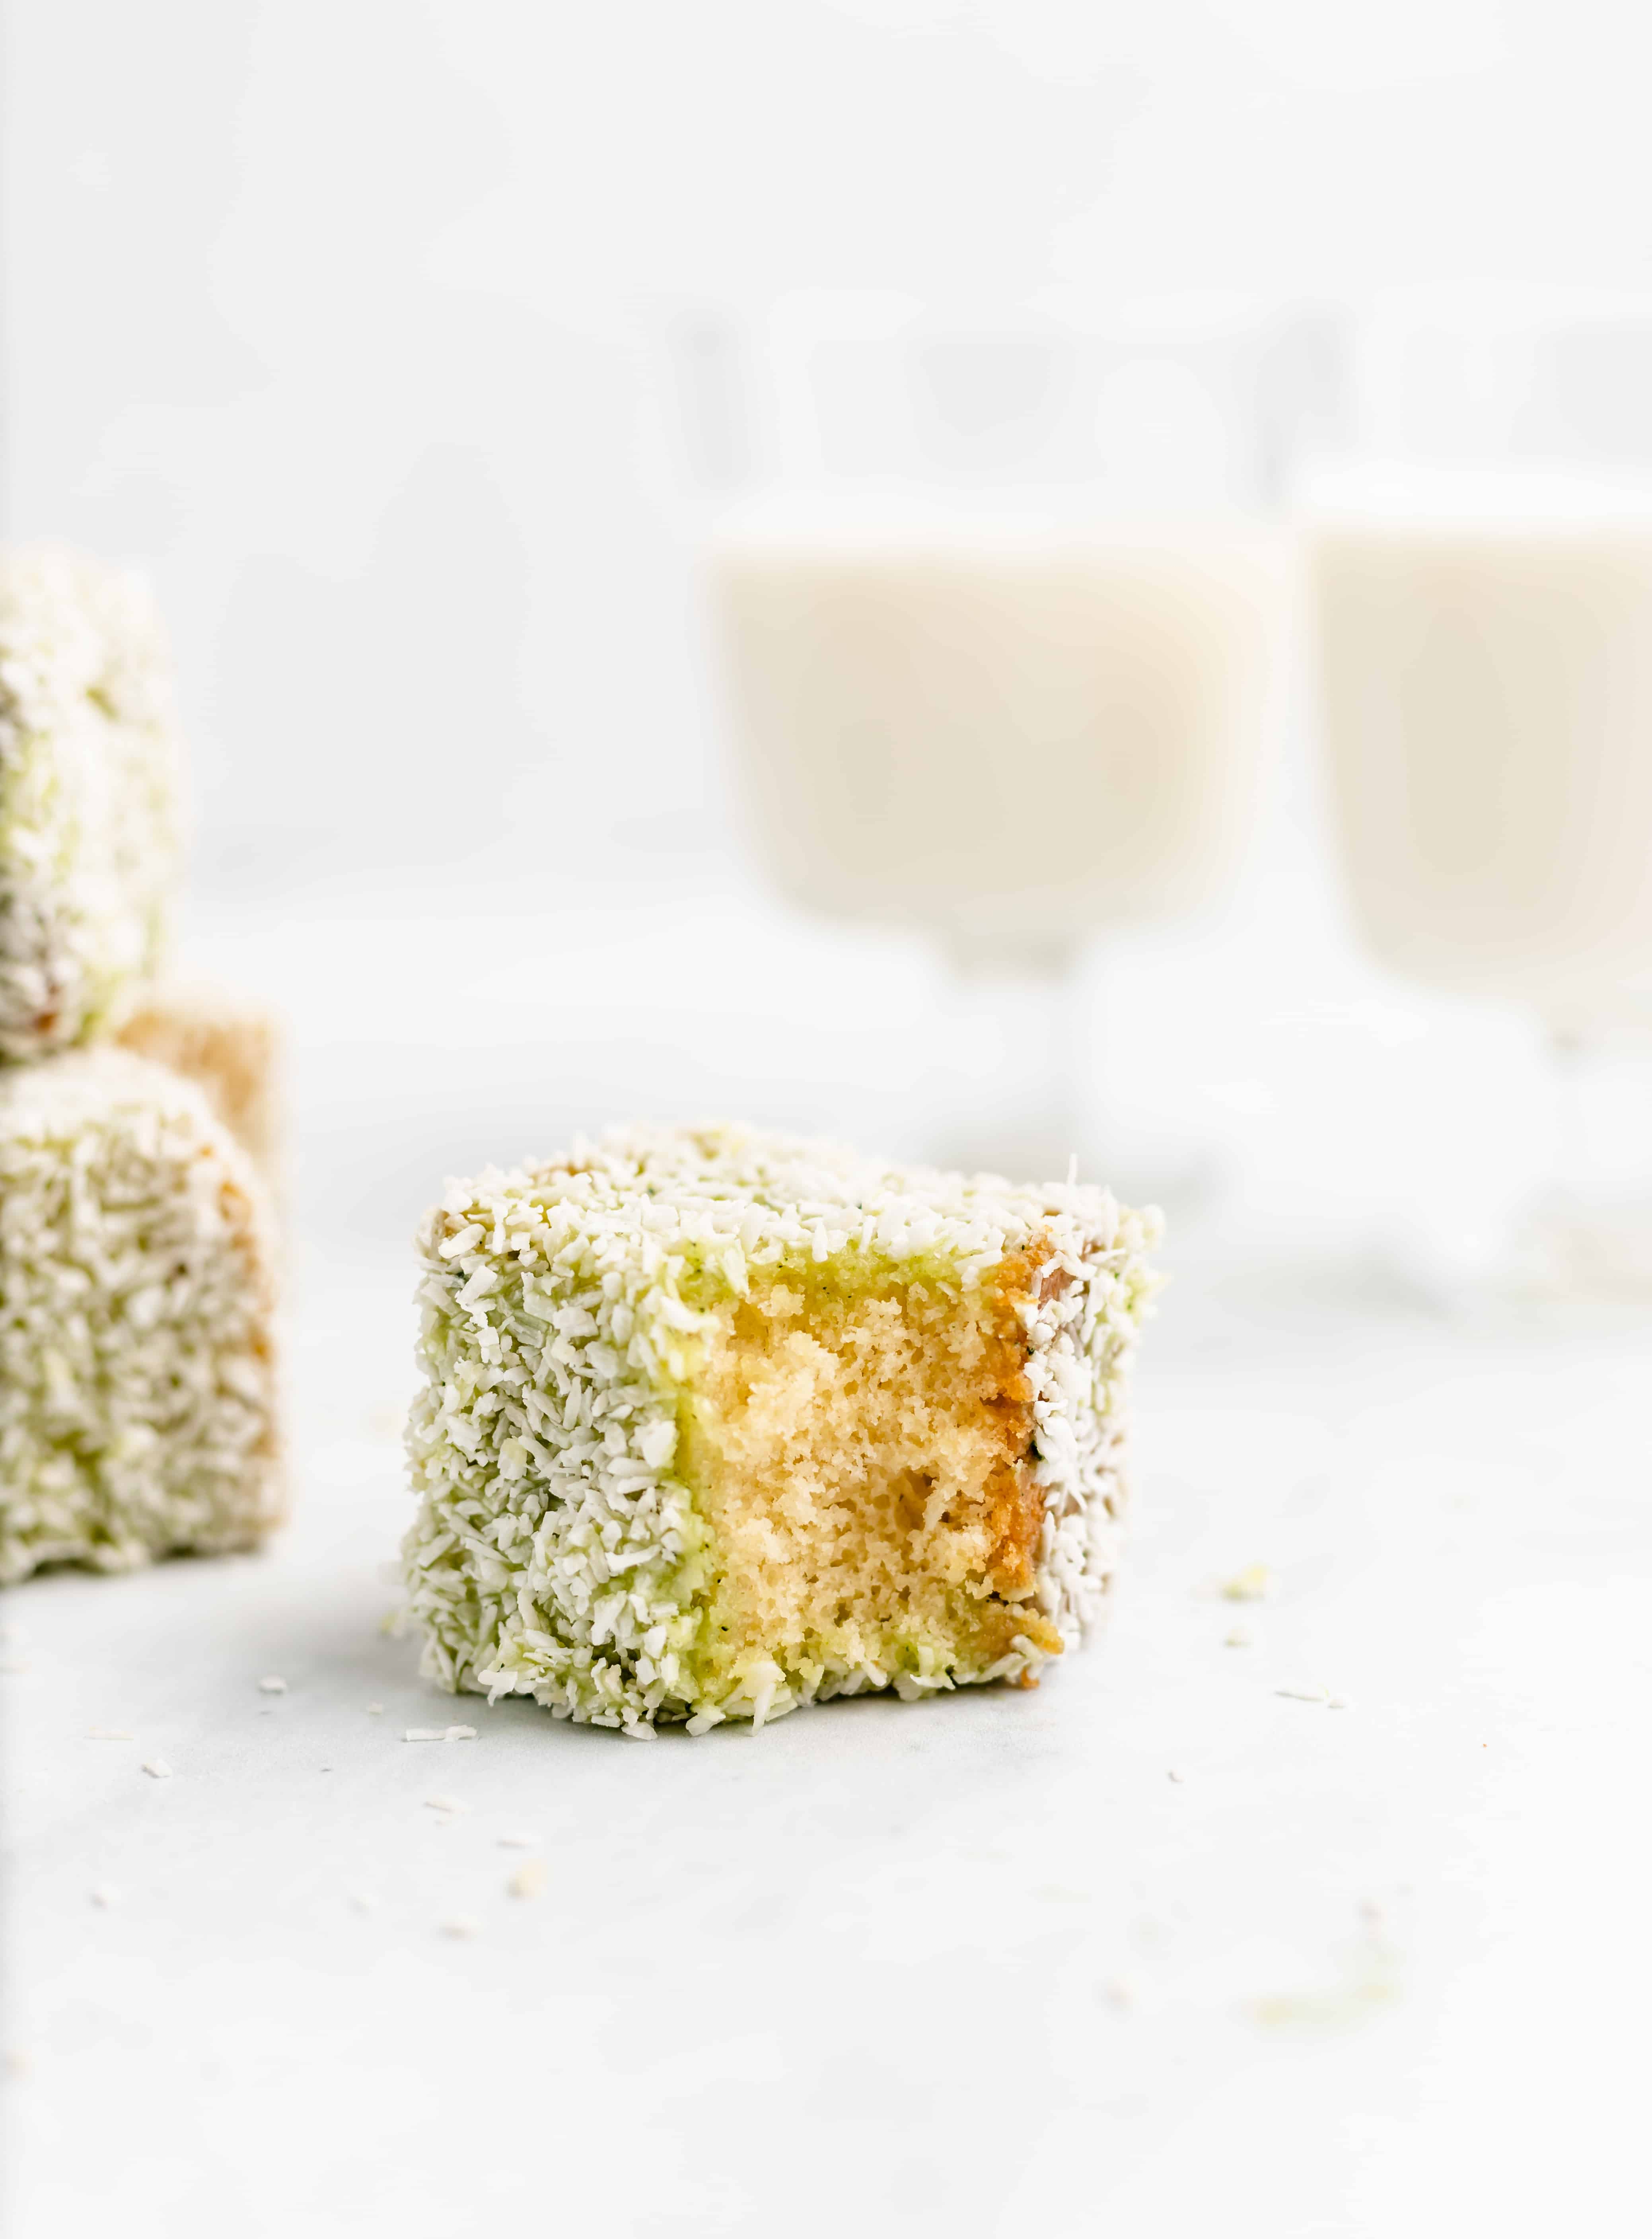 Soft and buttery sponge cake is dipped in matcha flavored white chocolate then coated in coconut. These Matcha White Chocolate Lamingtons are a perfect afternoon treat!